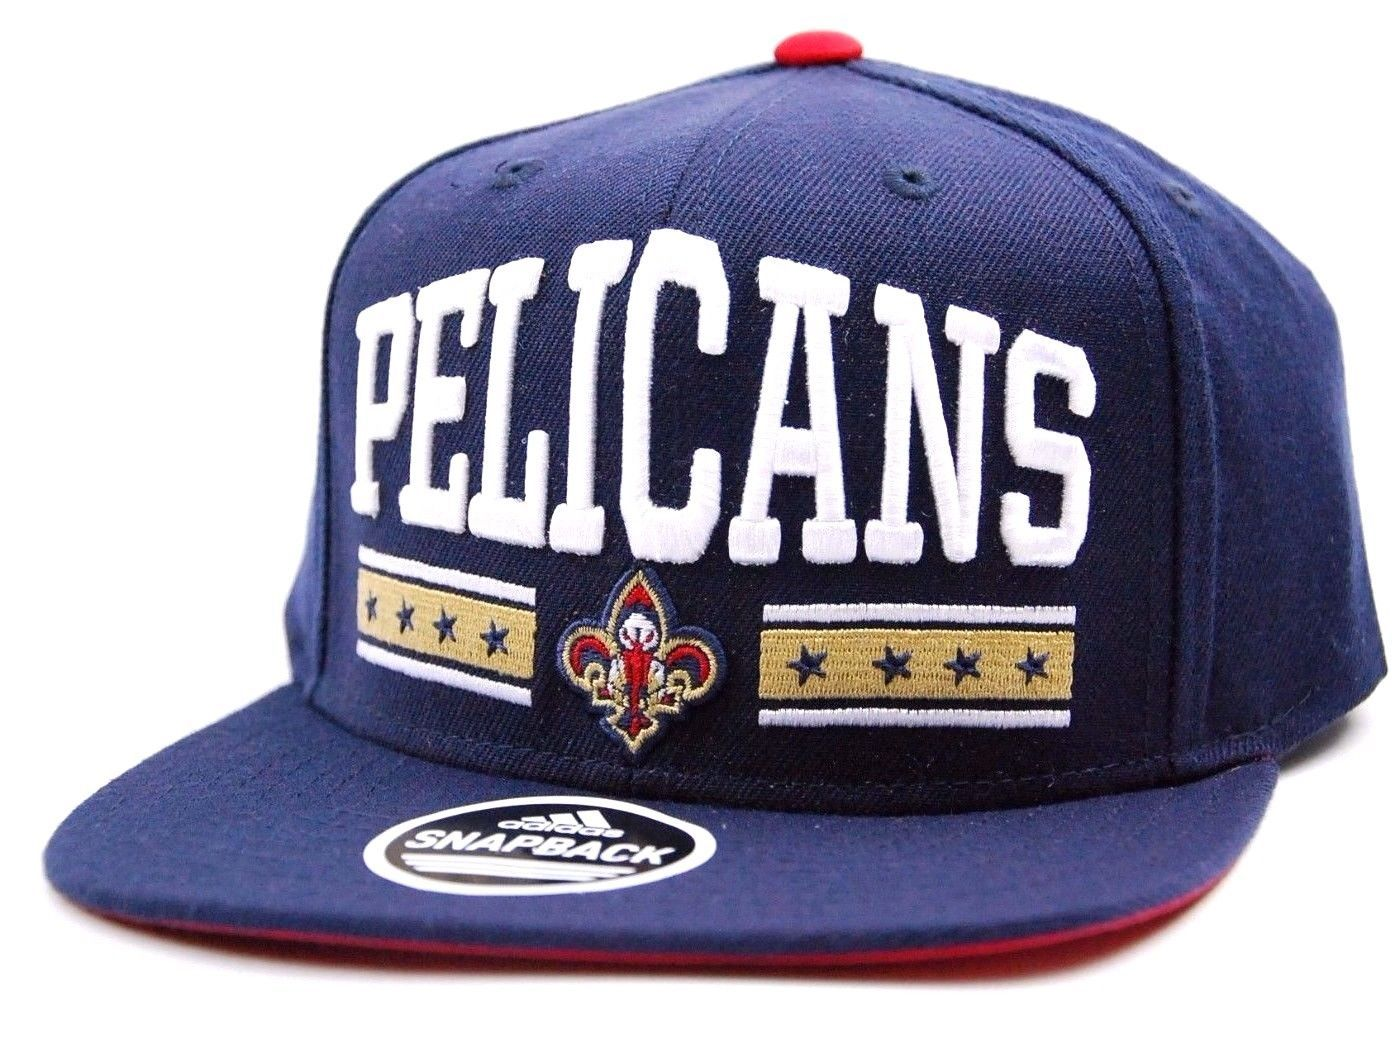 6570bc726b64c New Orleans Pelicans adidas VM01Z NBA and 50 similar items